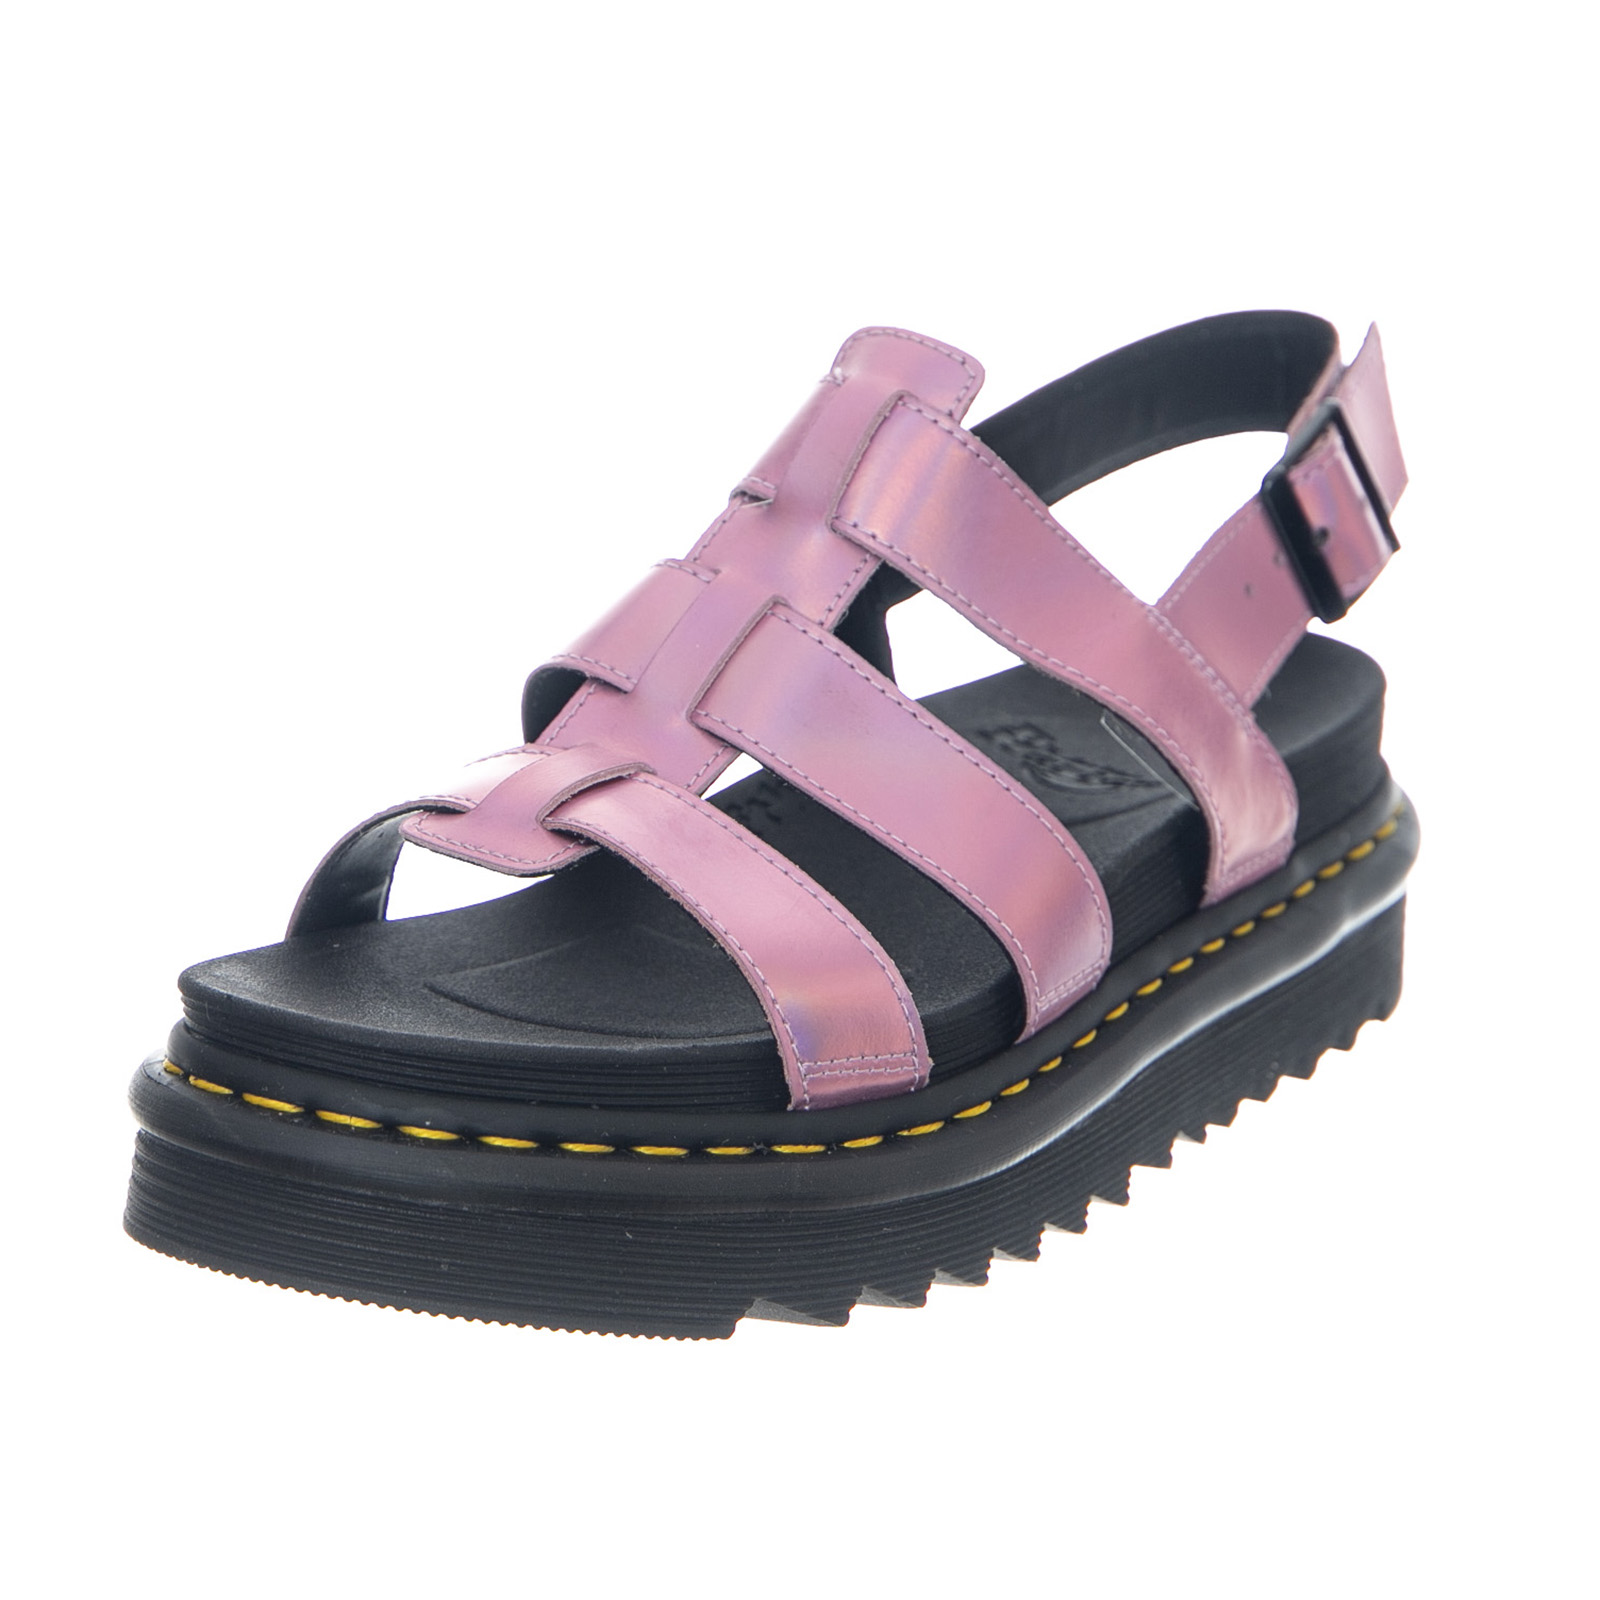 0f02411d3b2 Details about Dr.Martens Yelena Iced Metallic Mallow Pink Reflective  metallic Leather Sandals